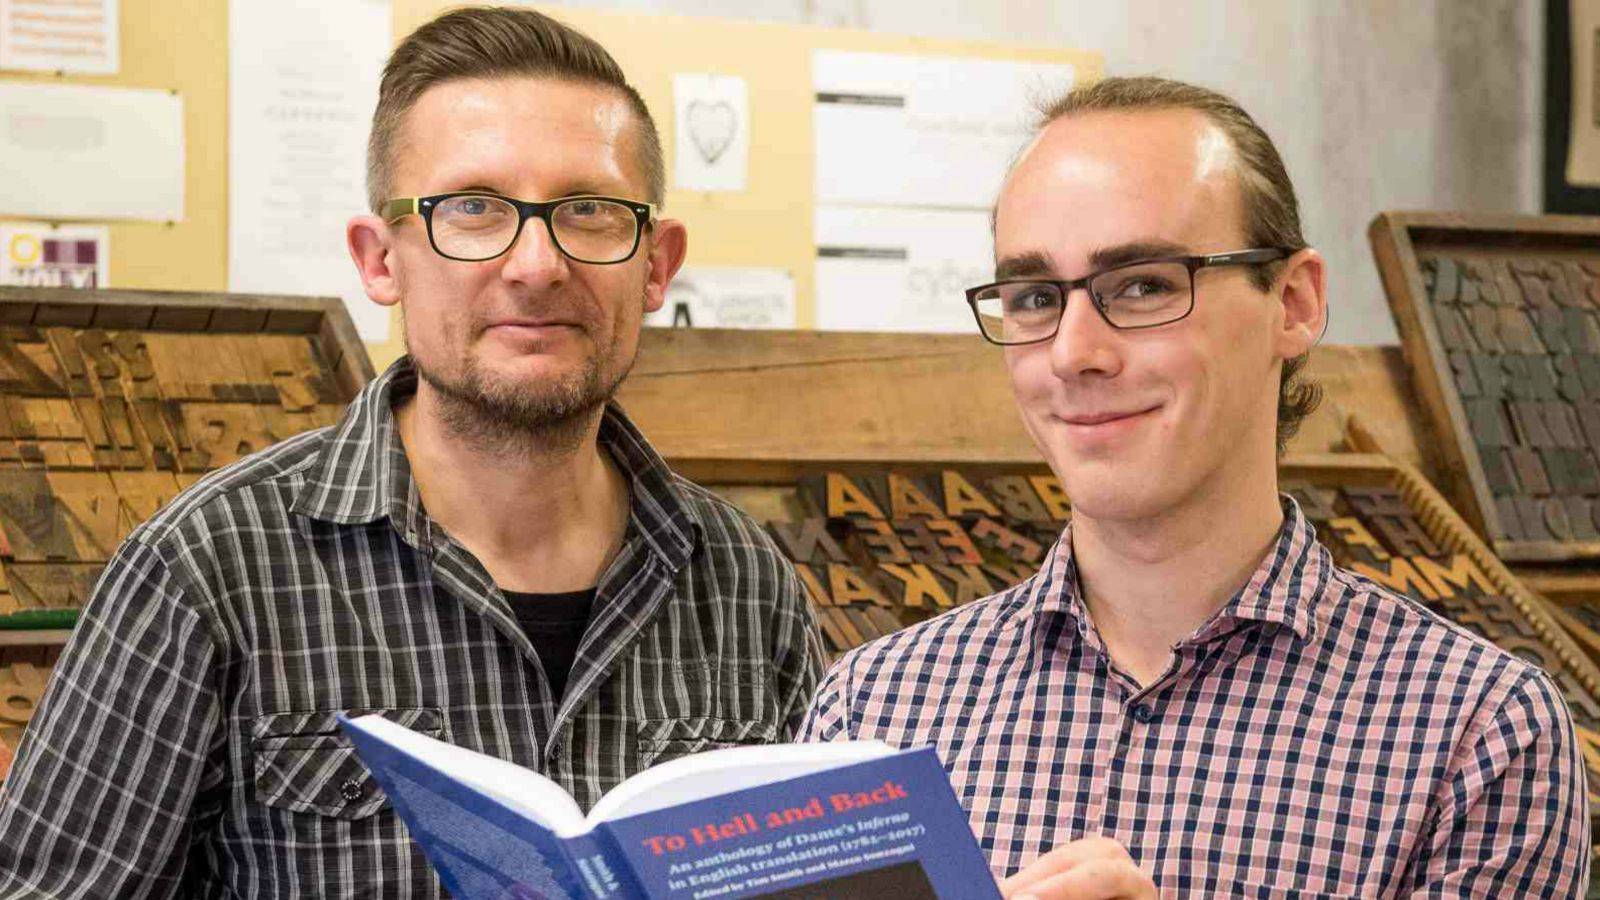 Dr Marco Sonzogni and Tim Smith with their new book, To Hell and Back, an anthology of Dante's Inferno.